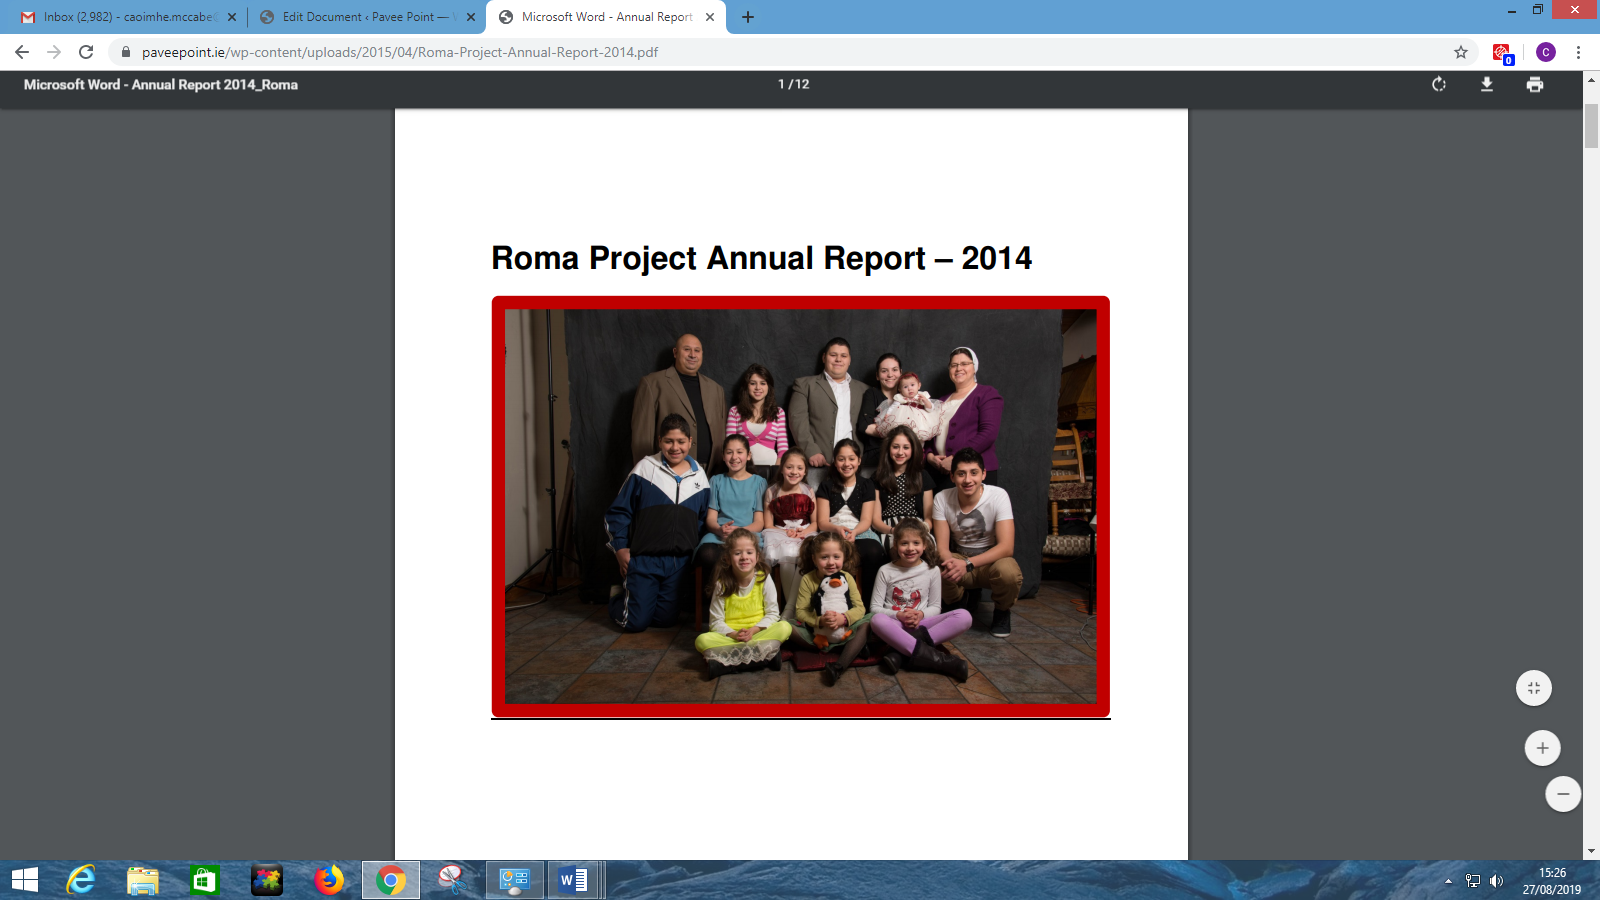 Roma Project Annual Report 2014